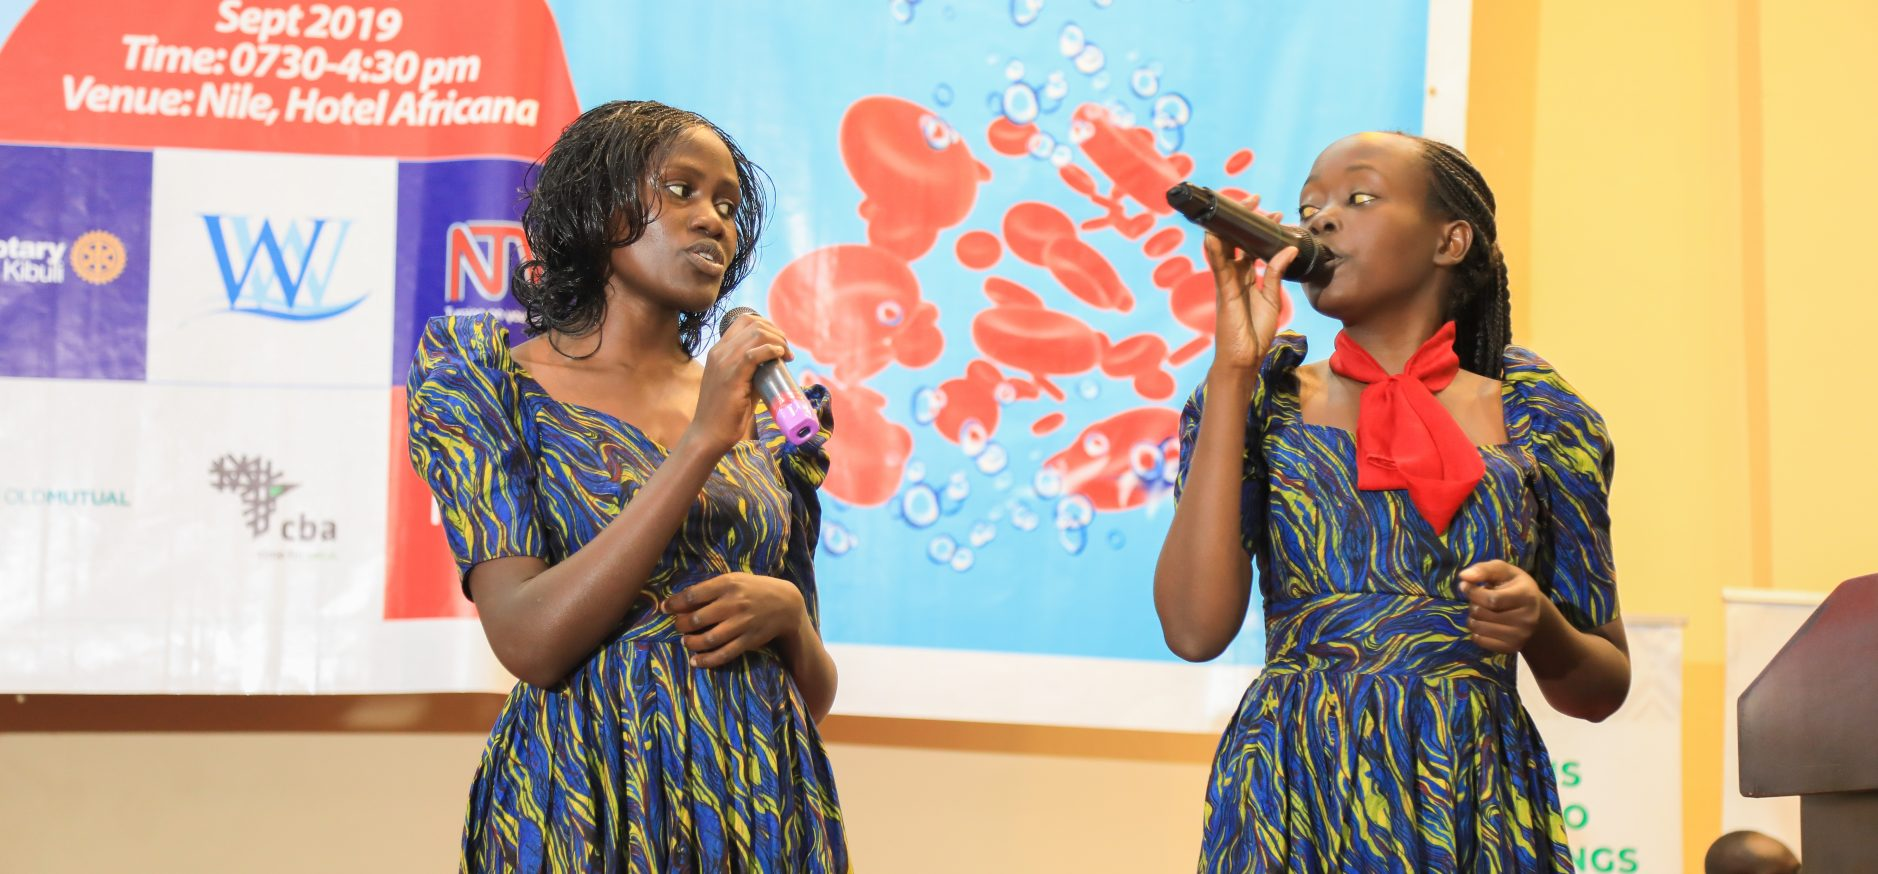 SC WORRIORS ENTERTAINING THE GUESTS AT THE 5TH SICKLE CELL CONFERENCE